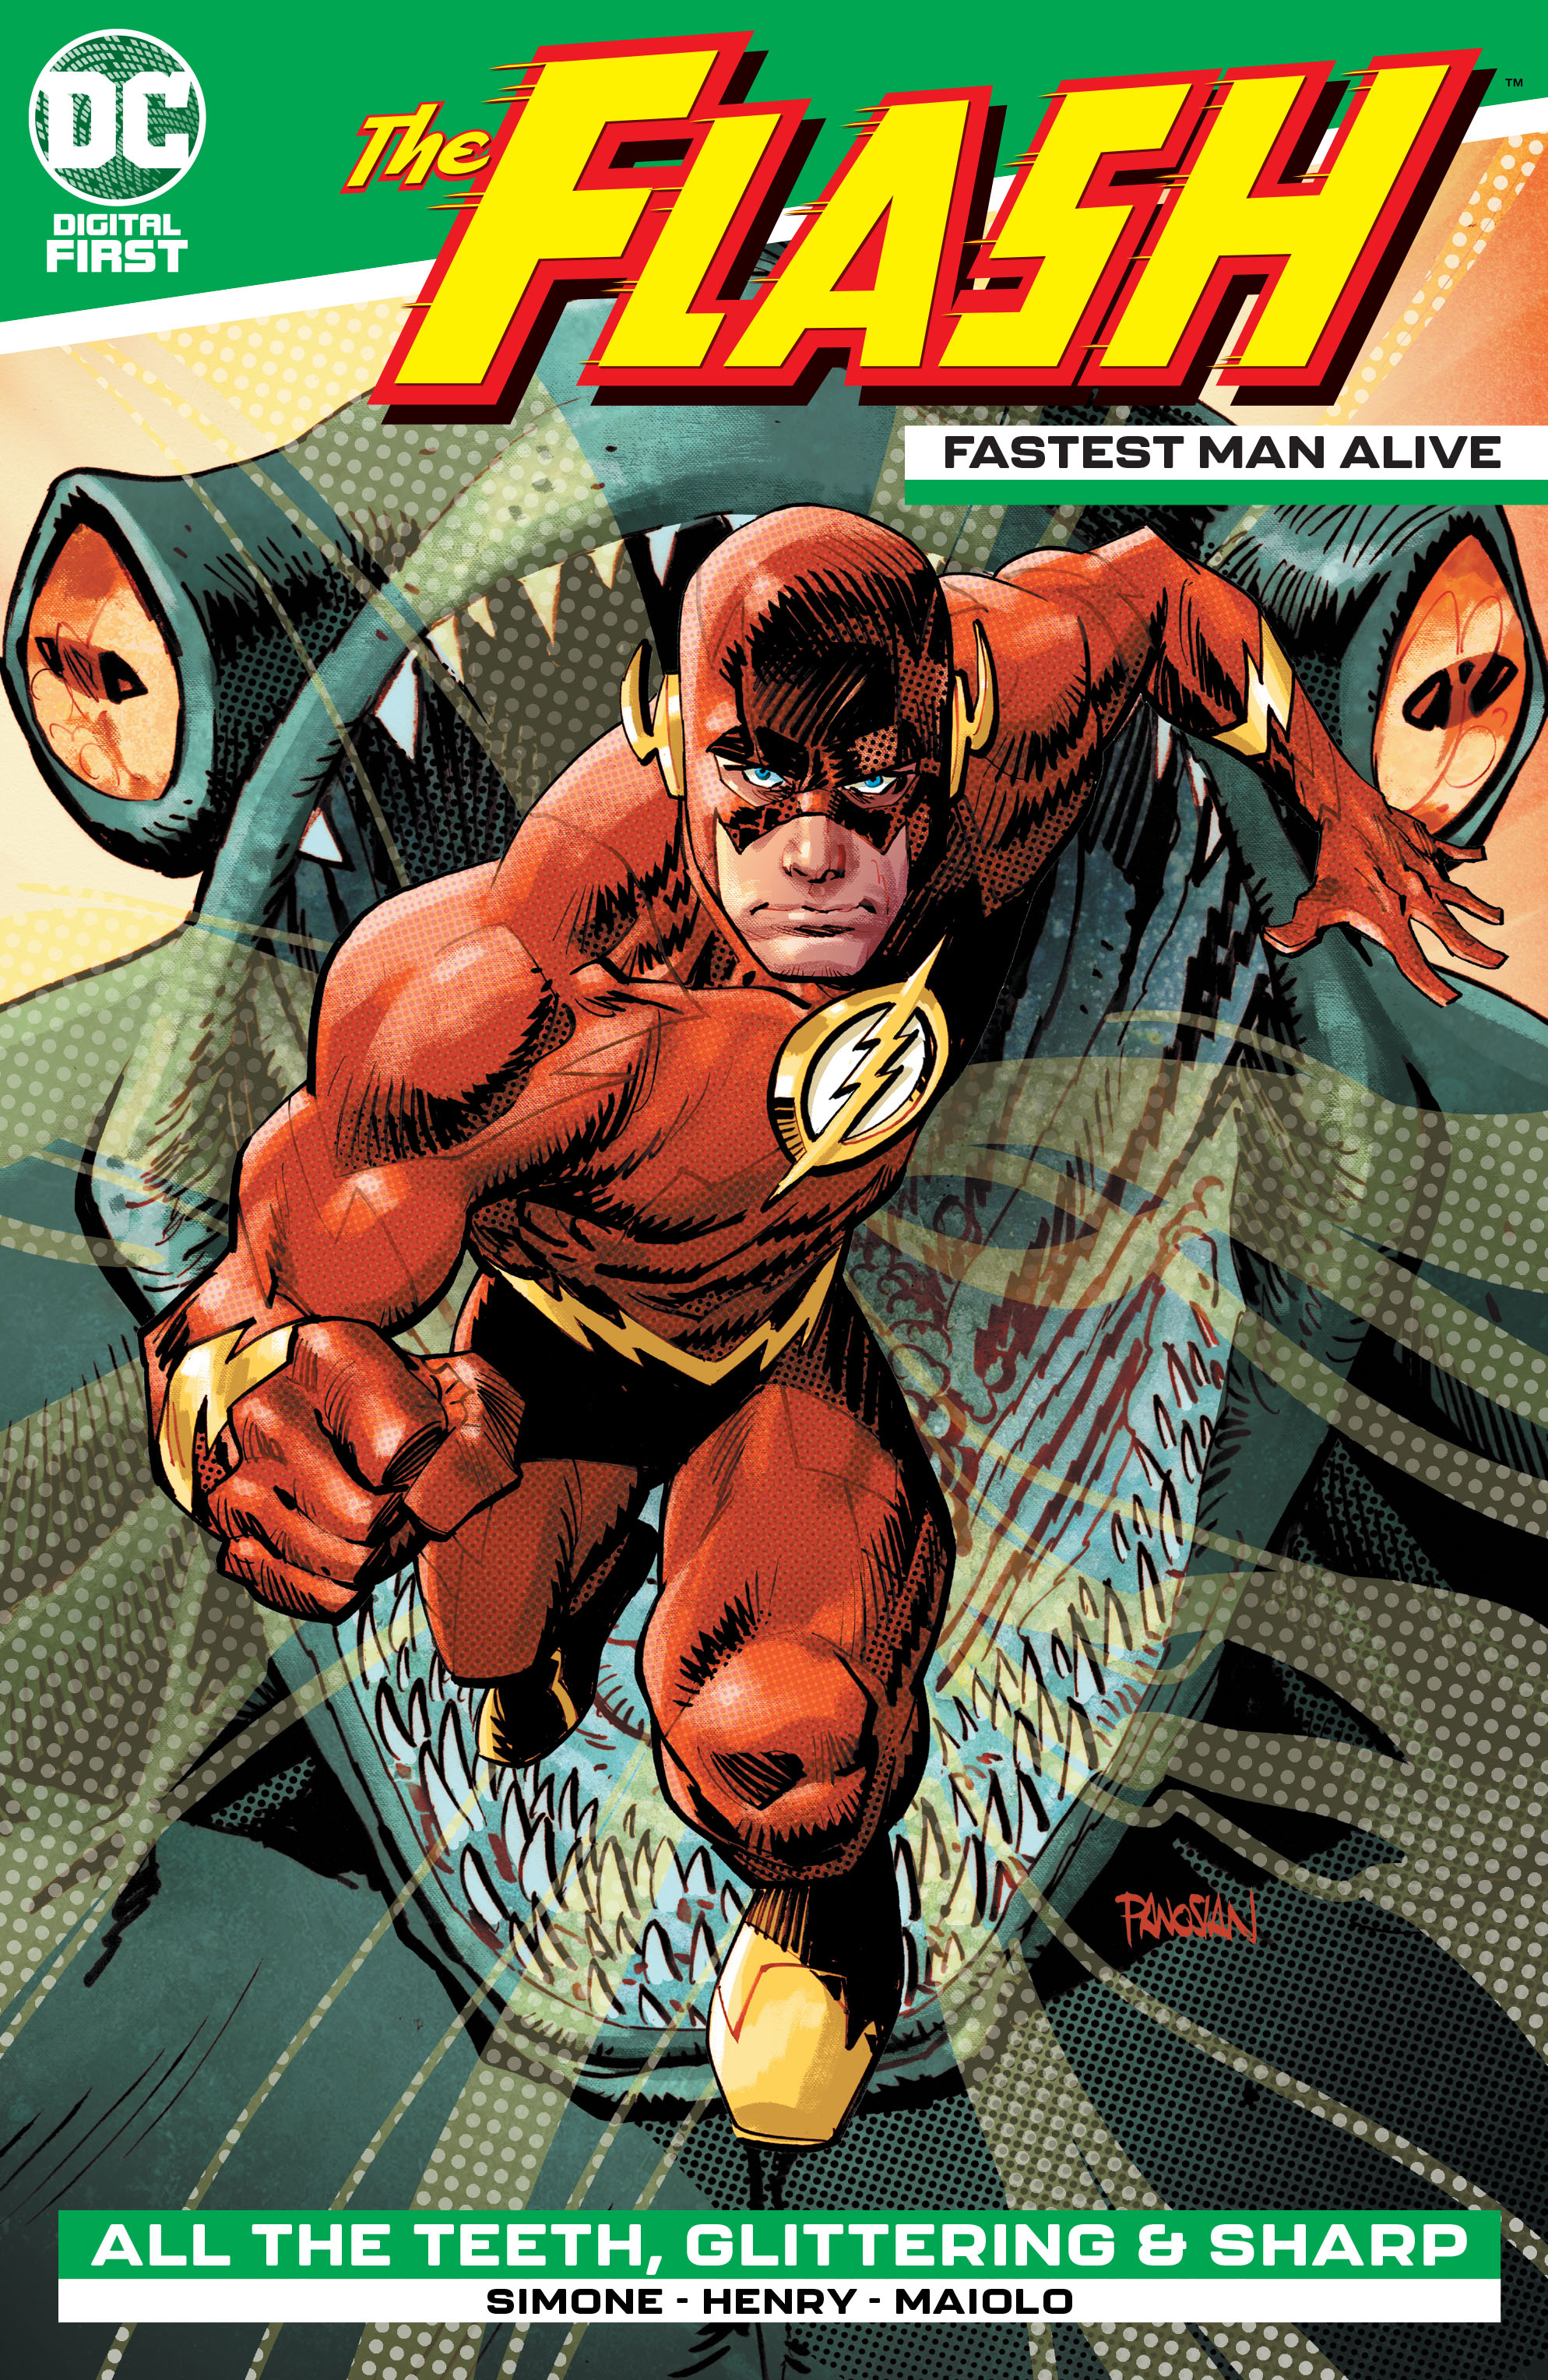 The Flash: Fastest Man Alive Vol 1 1 (Digital)